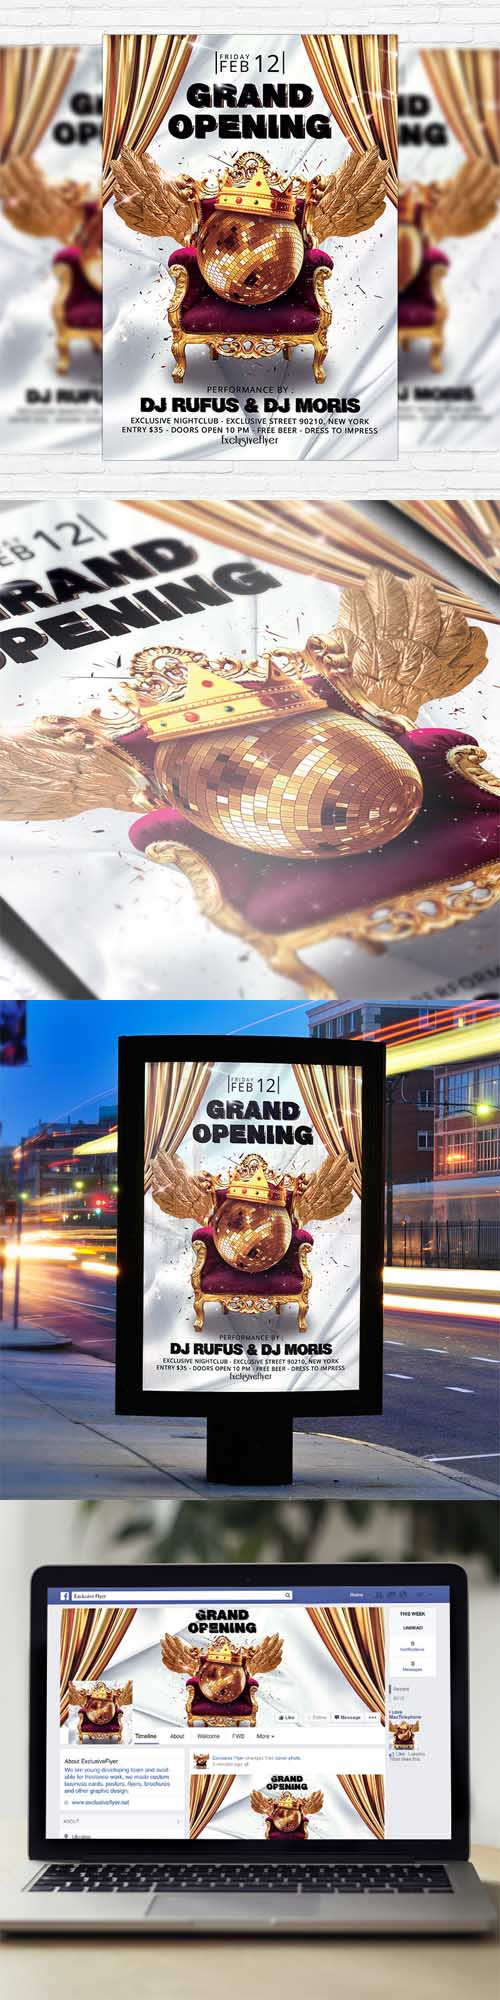 FLYER TEMPLATE GRAND OPENING FACEBOOK COVER Heroturko Download – Grand Opening Flyer Template